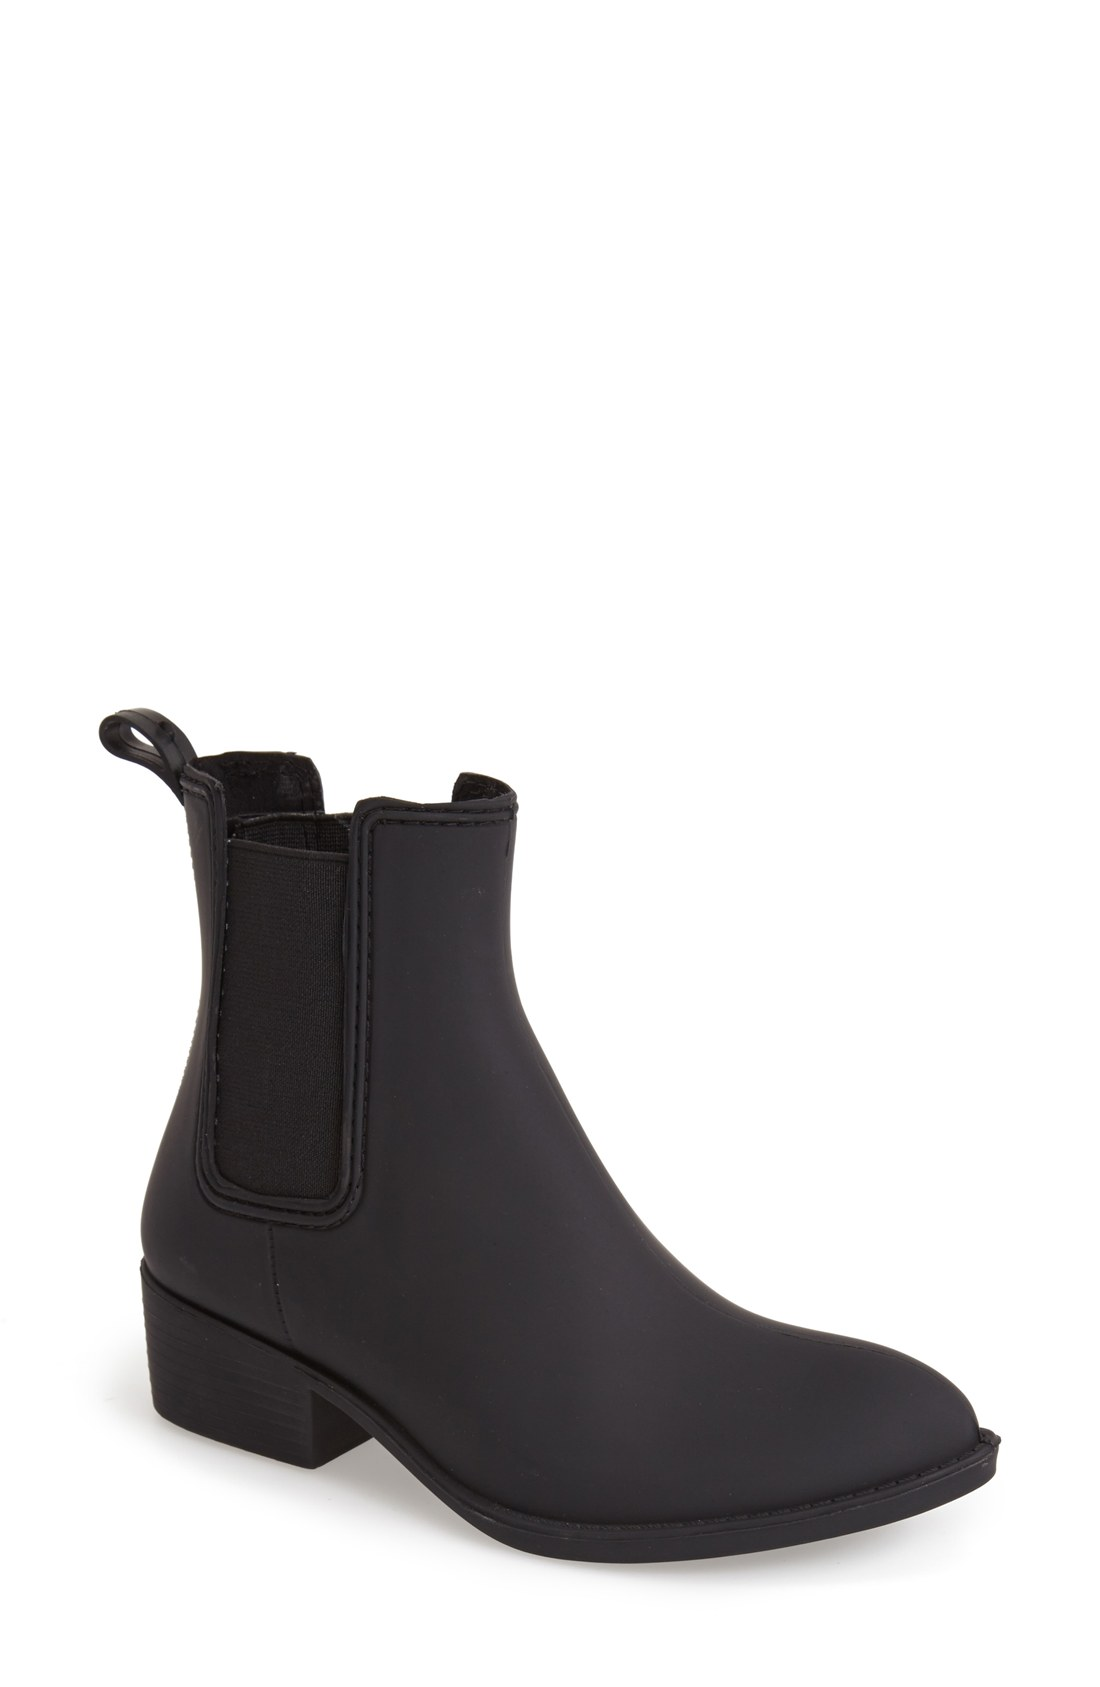 Black Boots Women 3qCylPLd